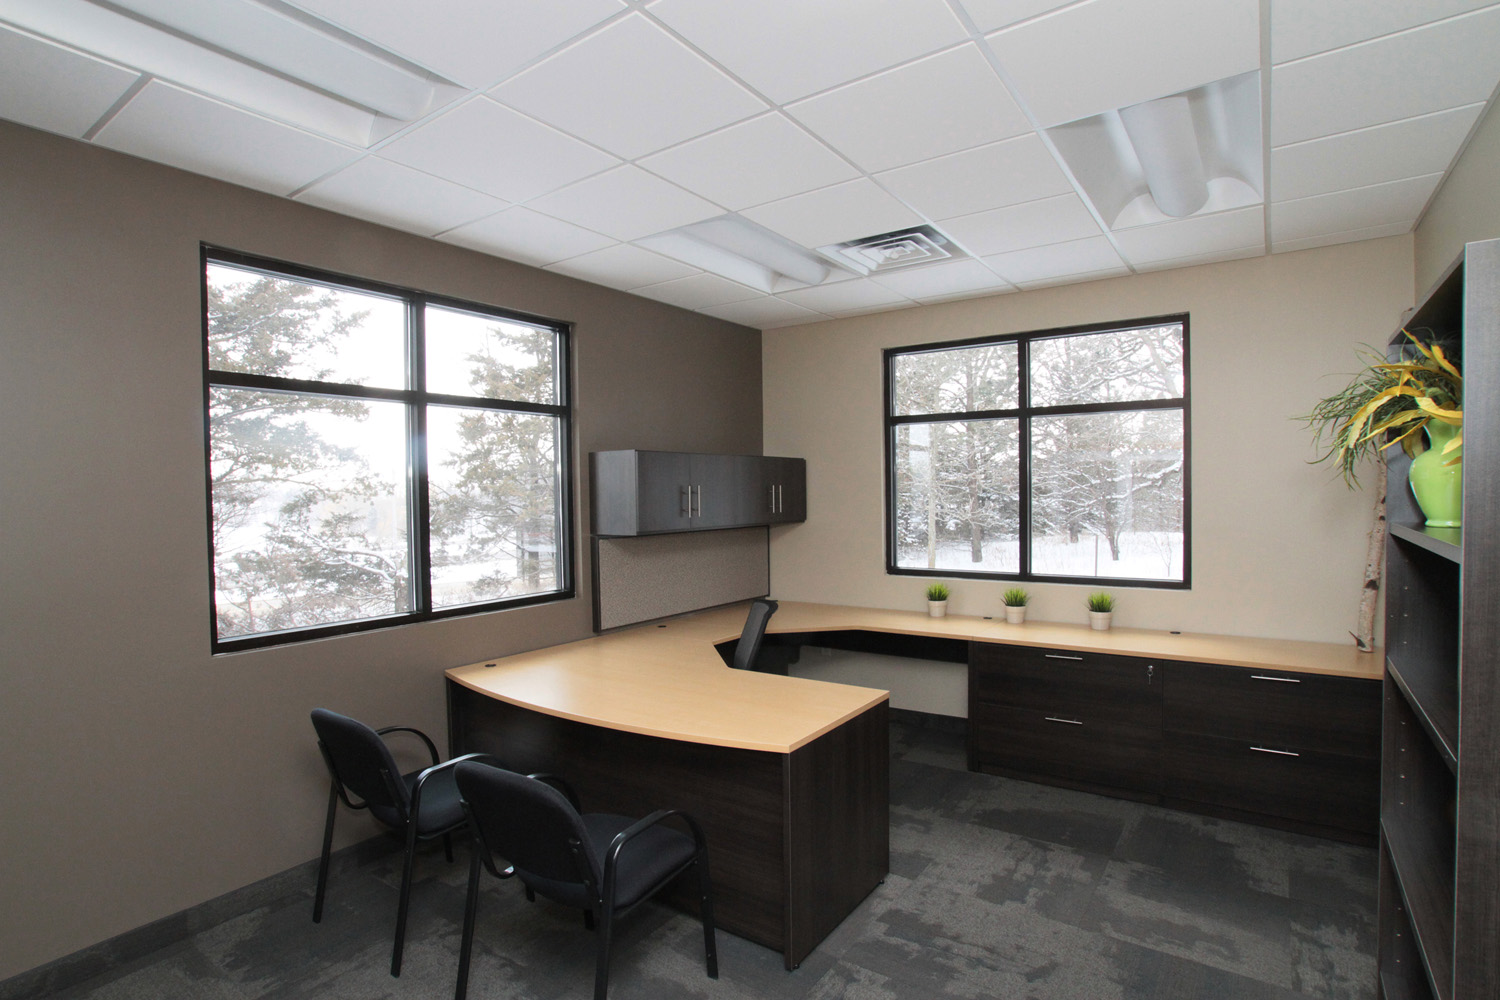 Office space design mankato new used office for Interior design of office space